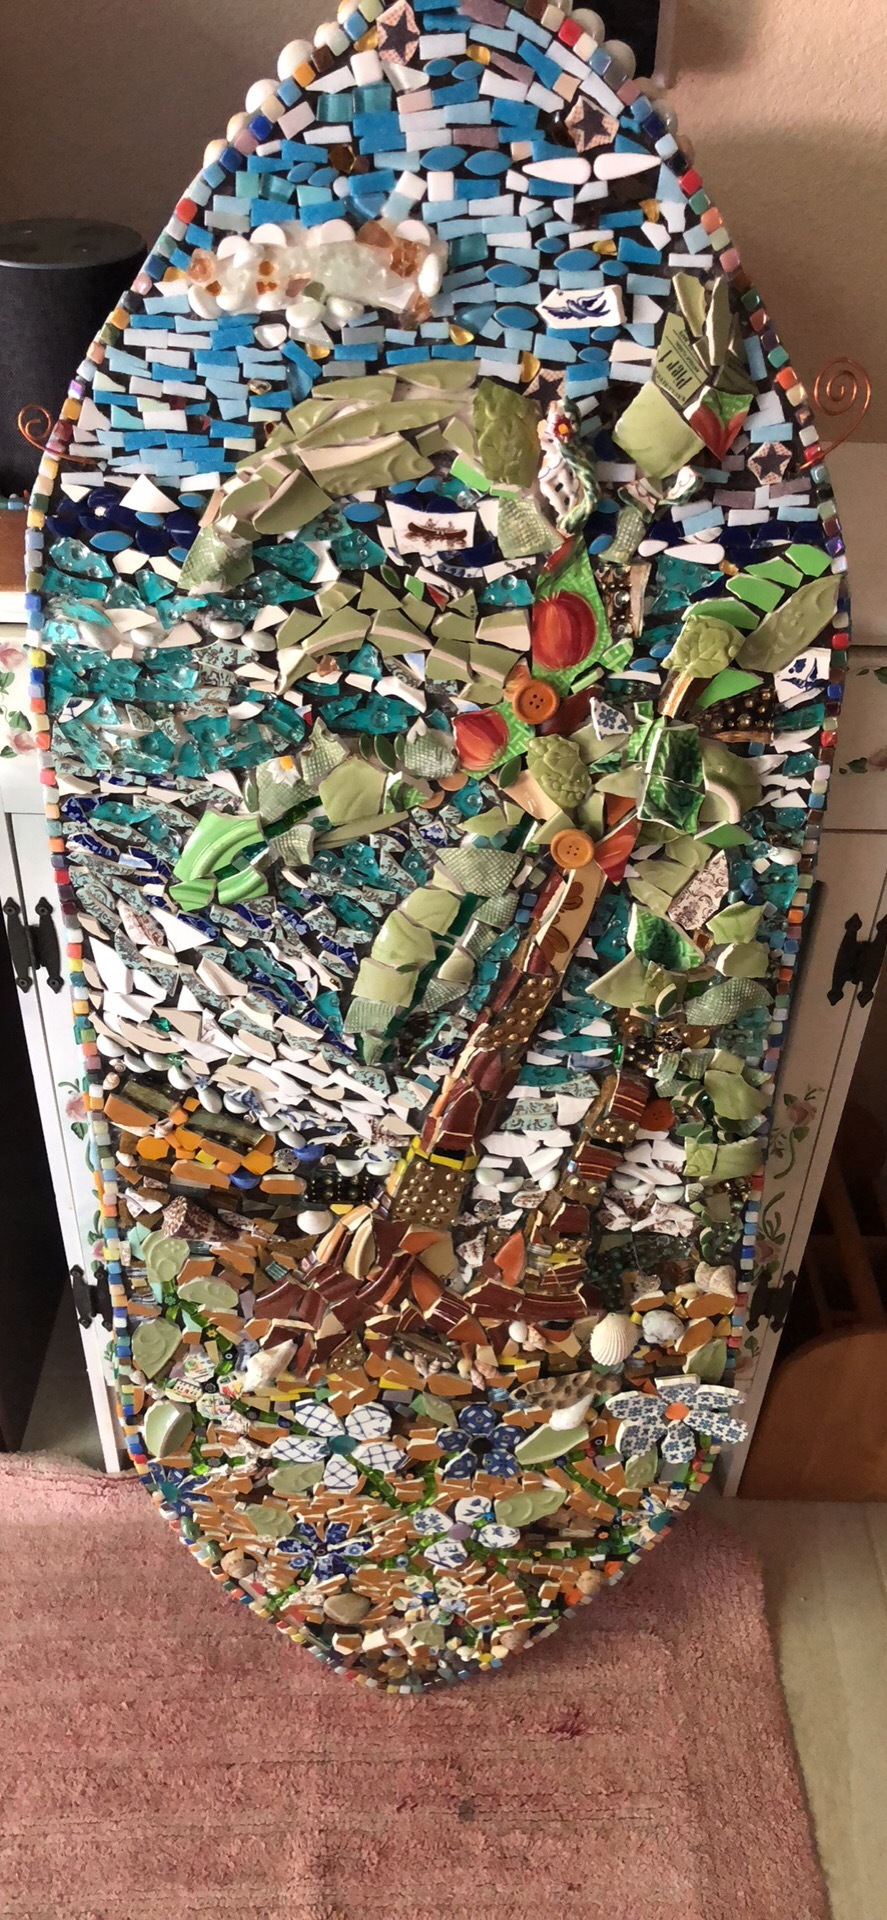 The surfboard project... a mosaic made with plates, cups and dishes!